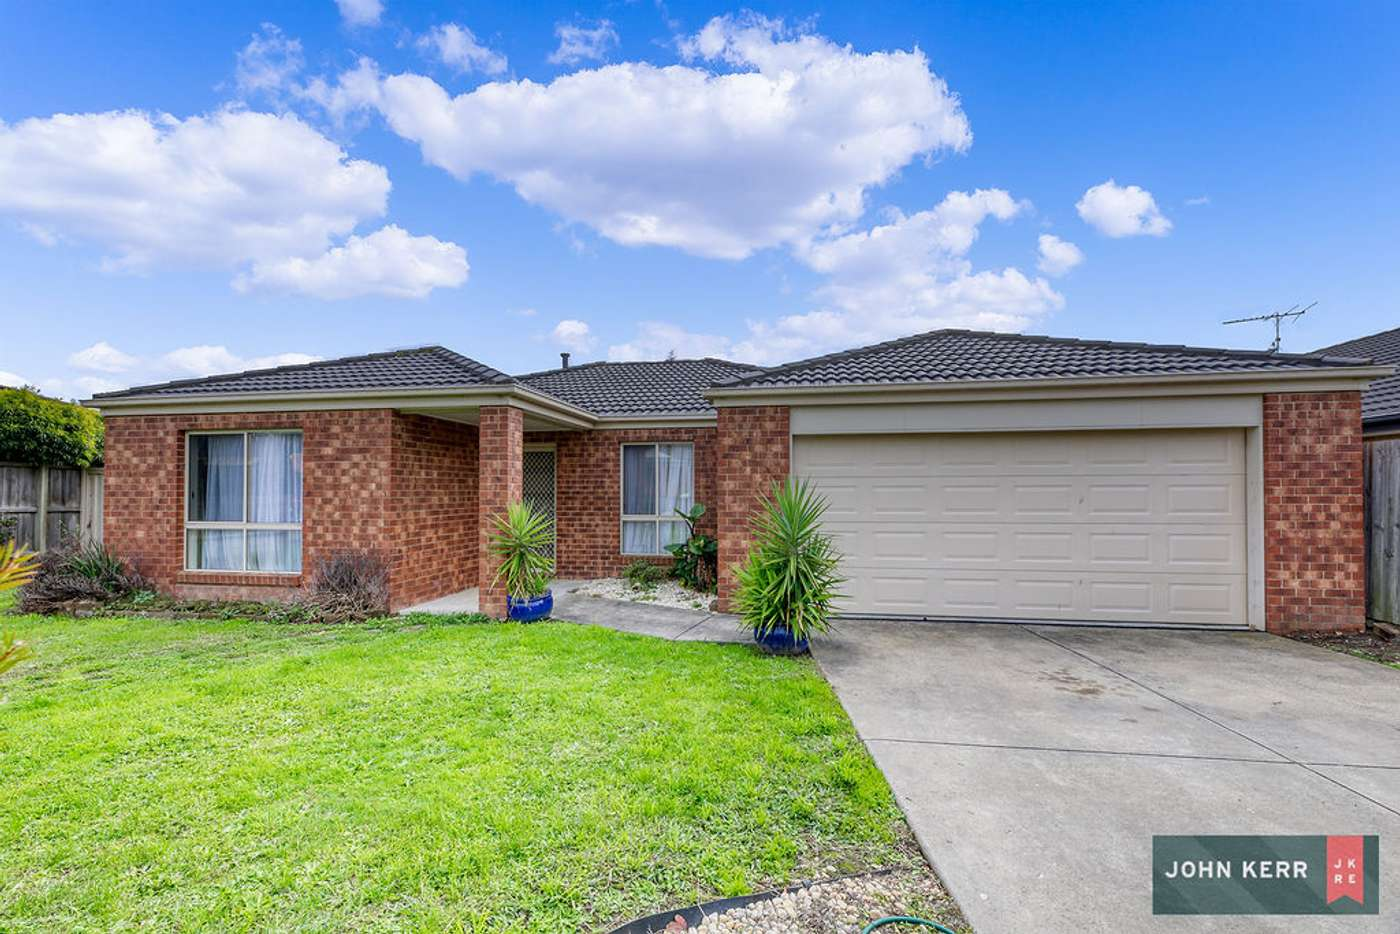 Main view of Homely house listing, 29 Vincent Blvd, Trafalgar VIC 3824